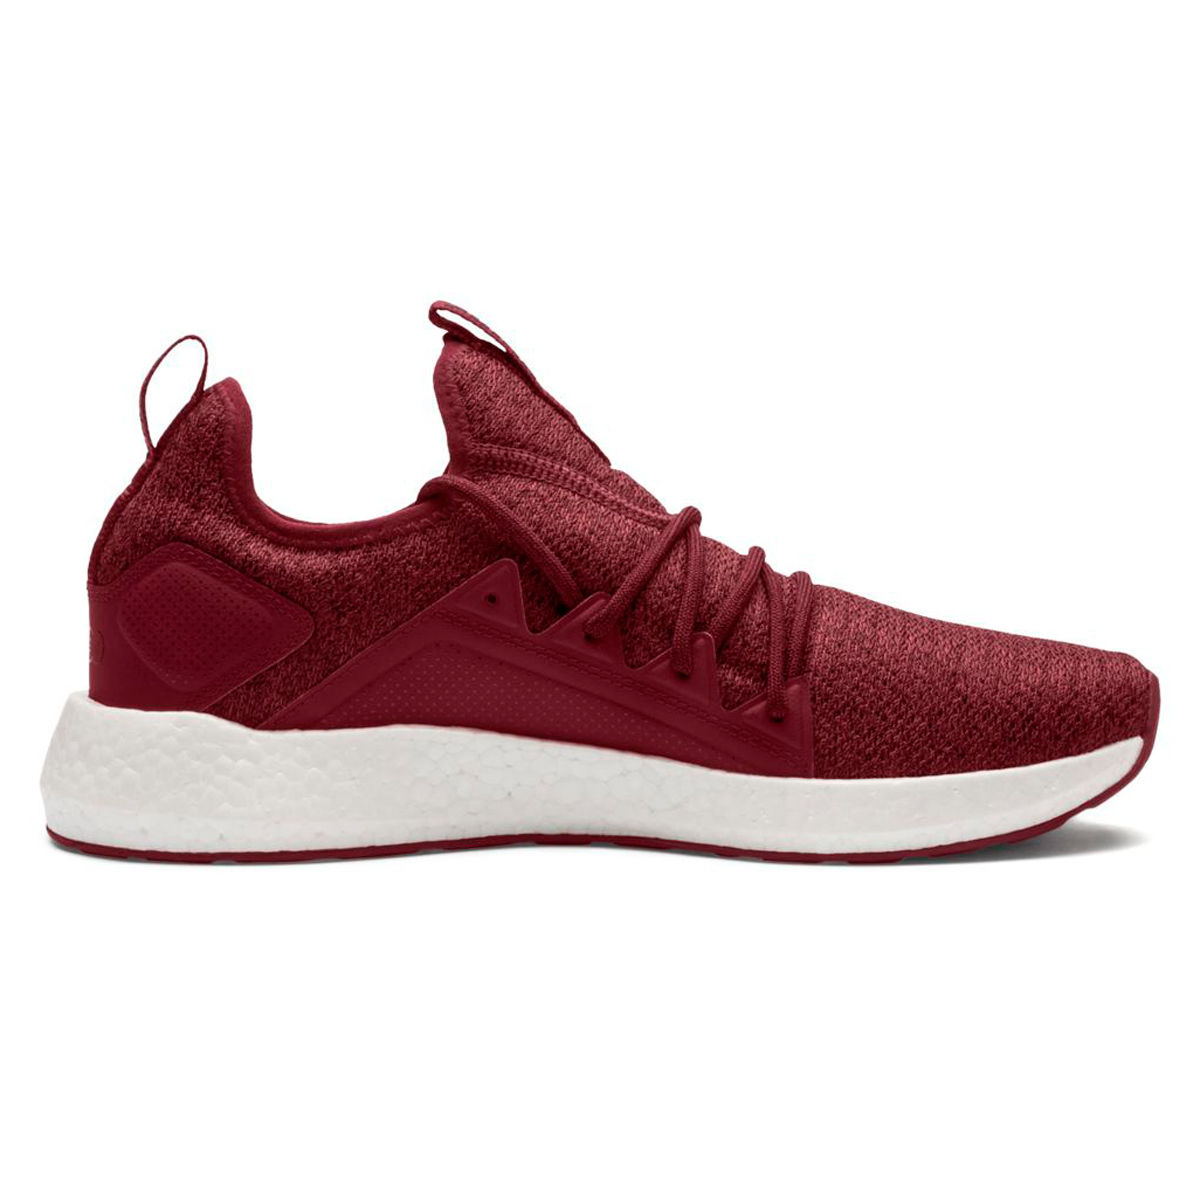 Puma NRGY Neko Knit Mens Casual Shoe